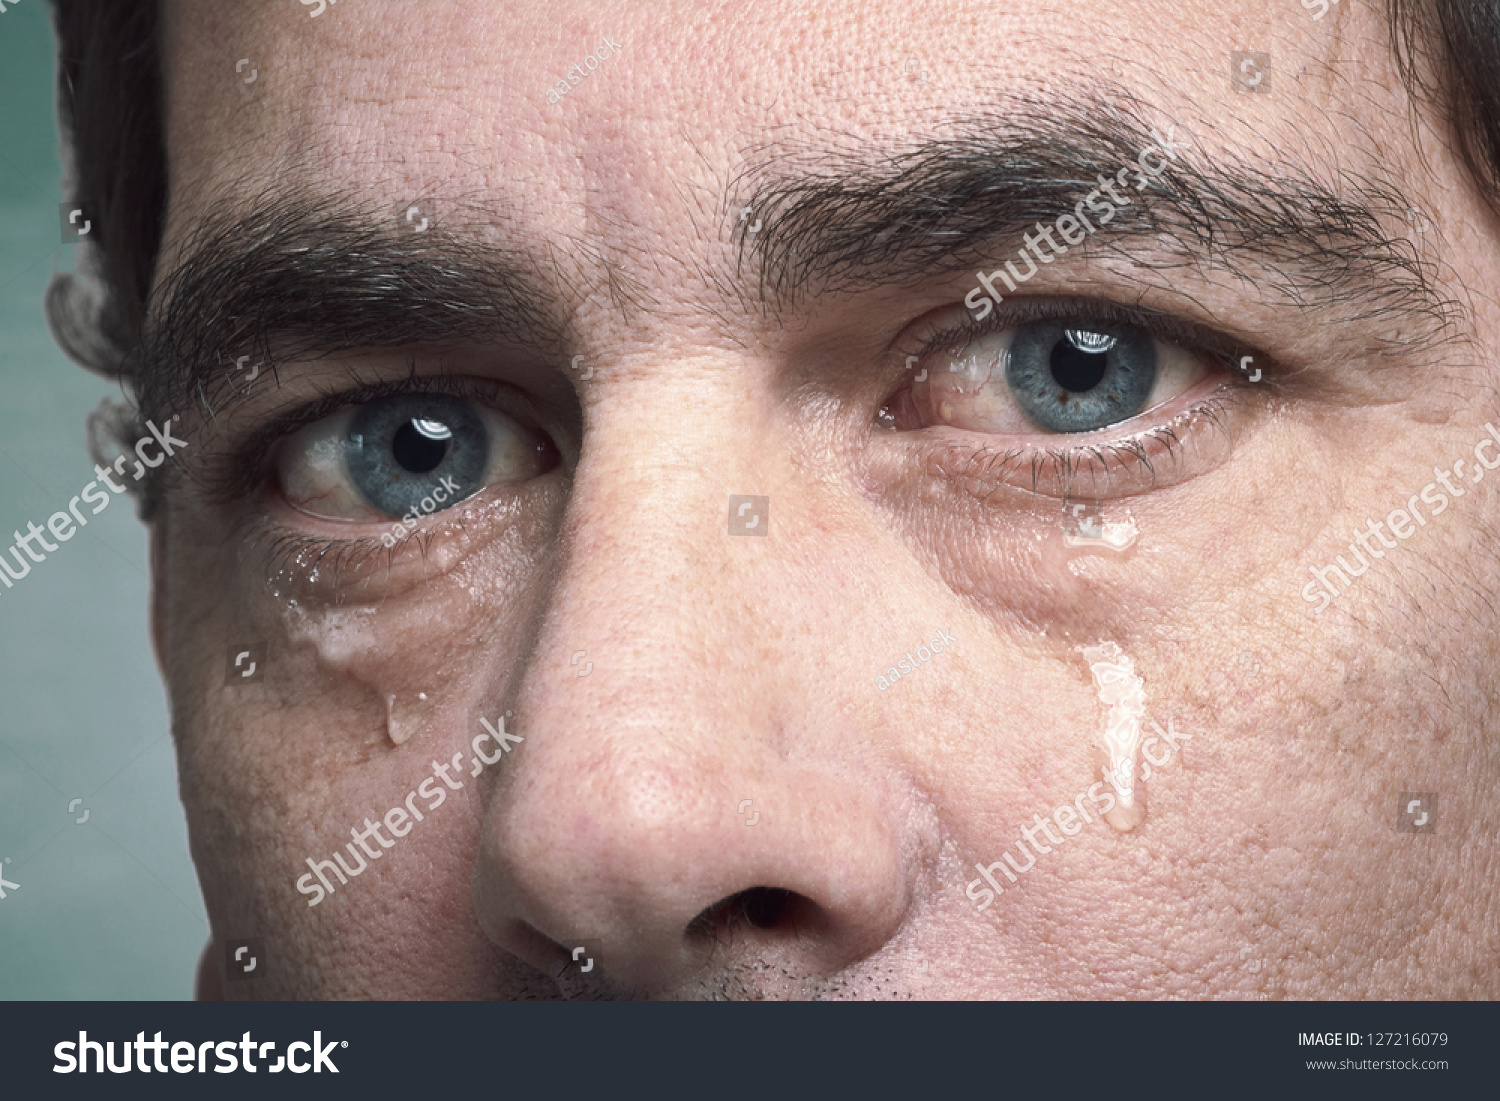 Tears Eyes Crying Adult Man Stock Photo 127216079